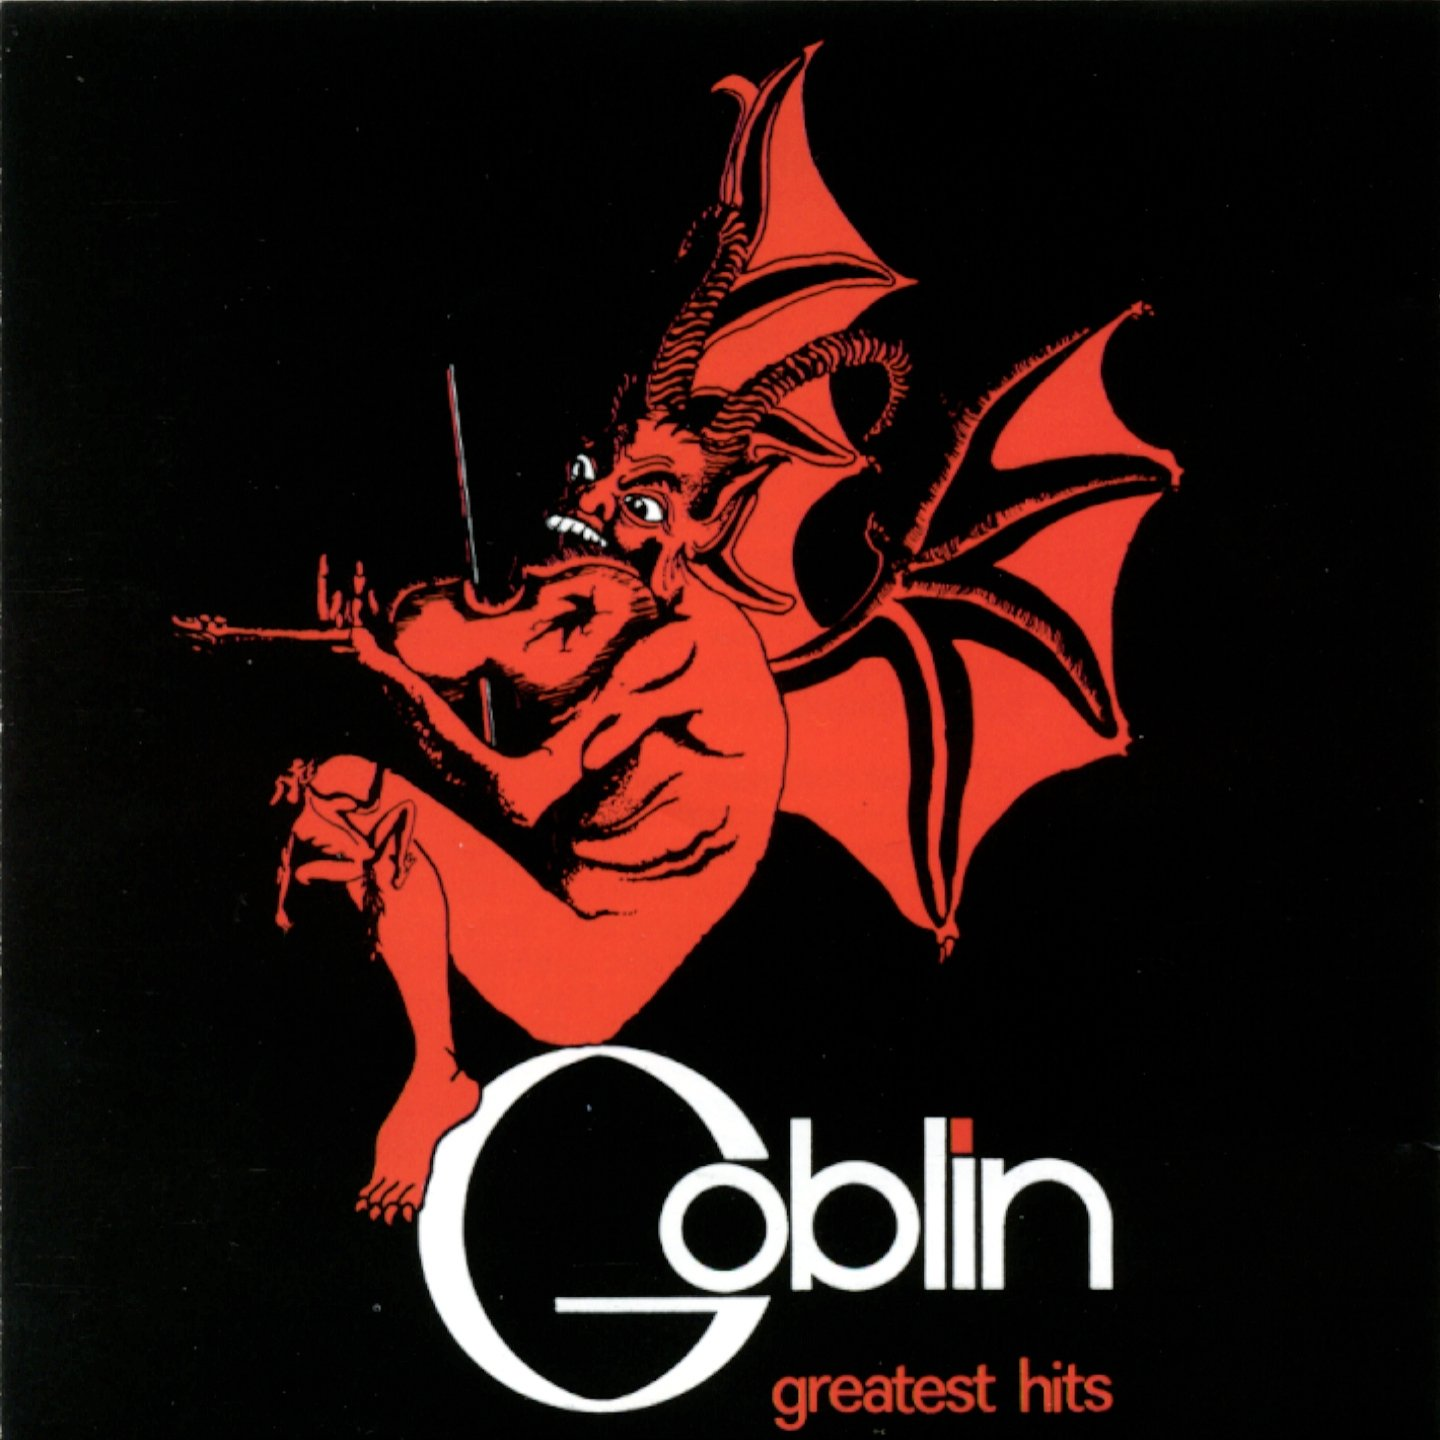 Goblin - Greatest hits